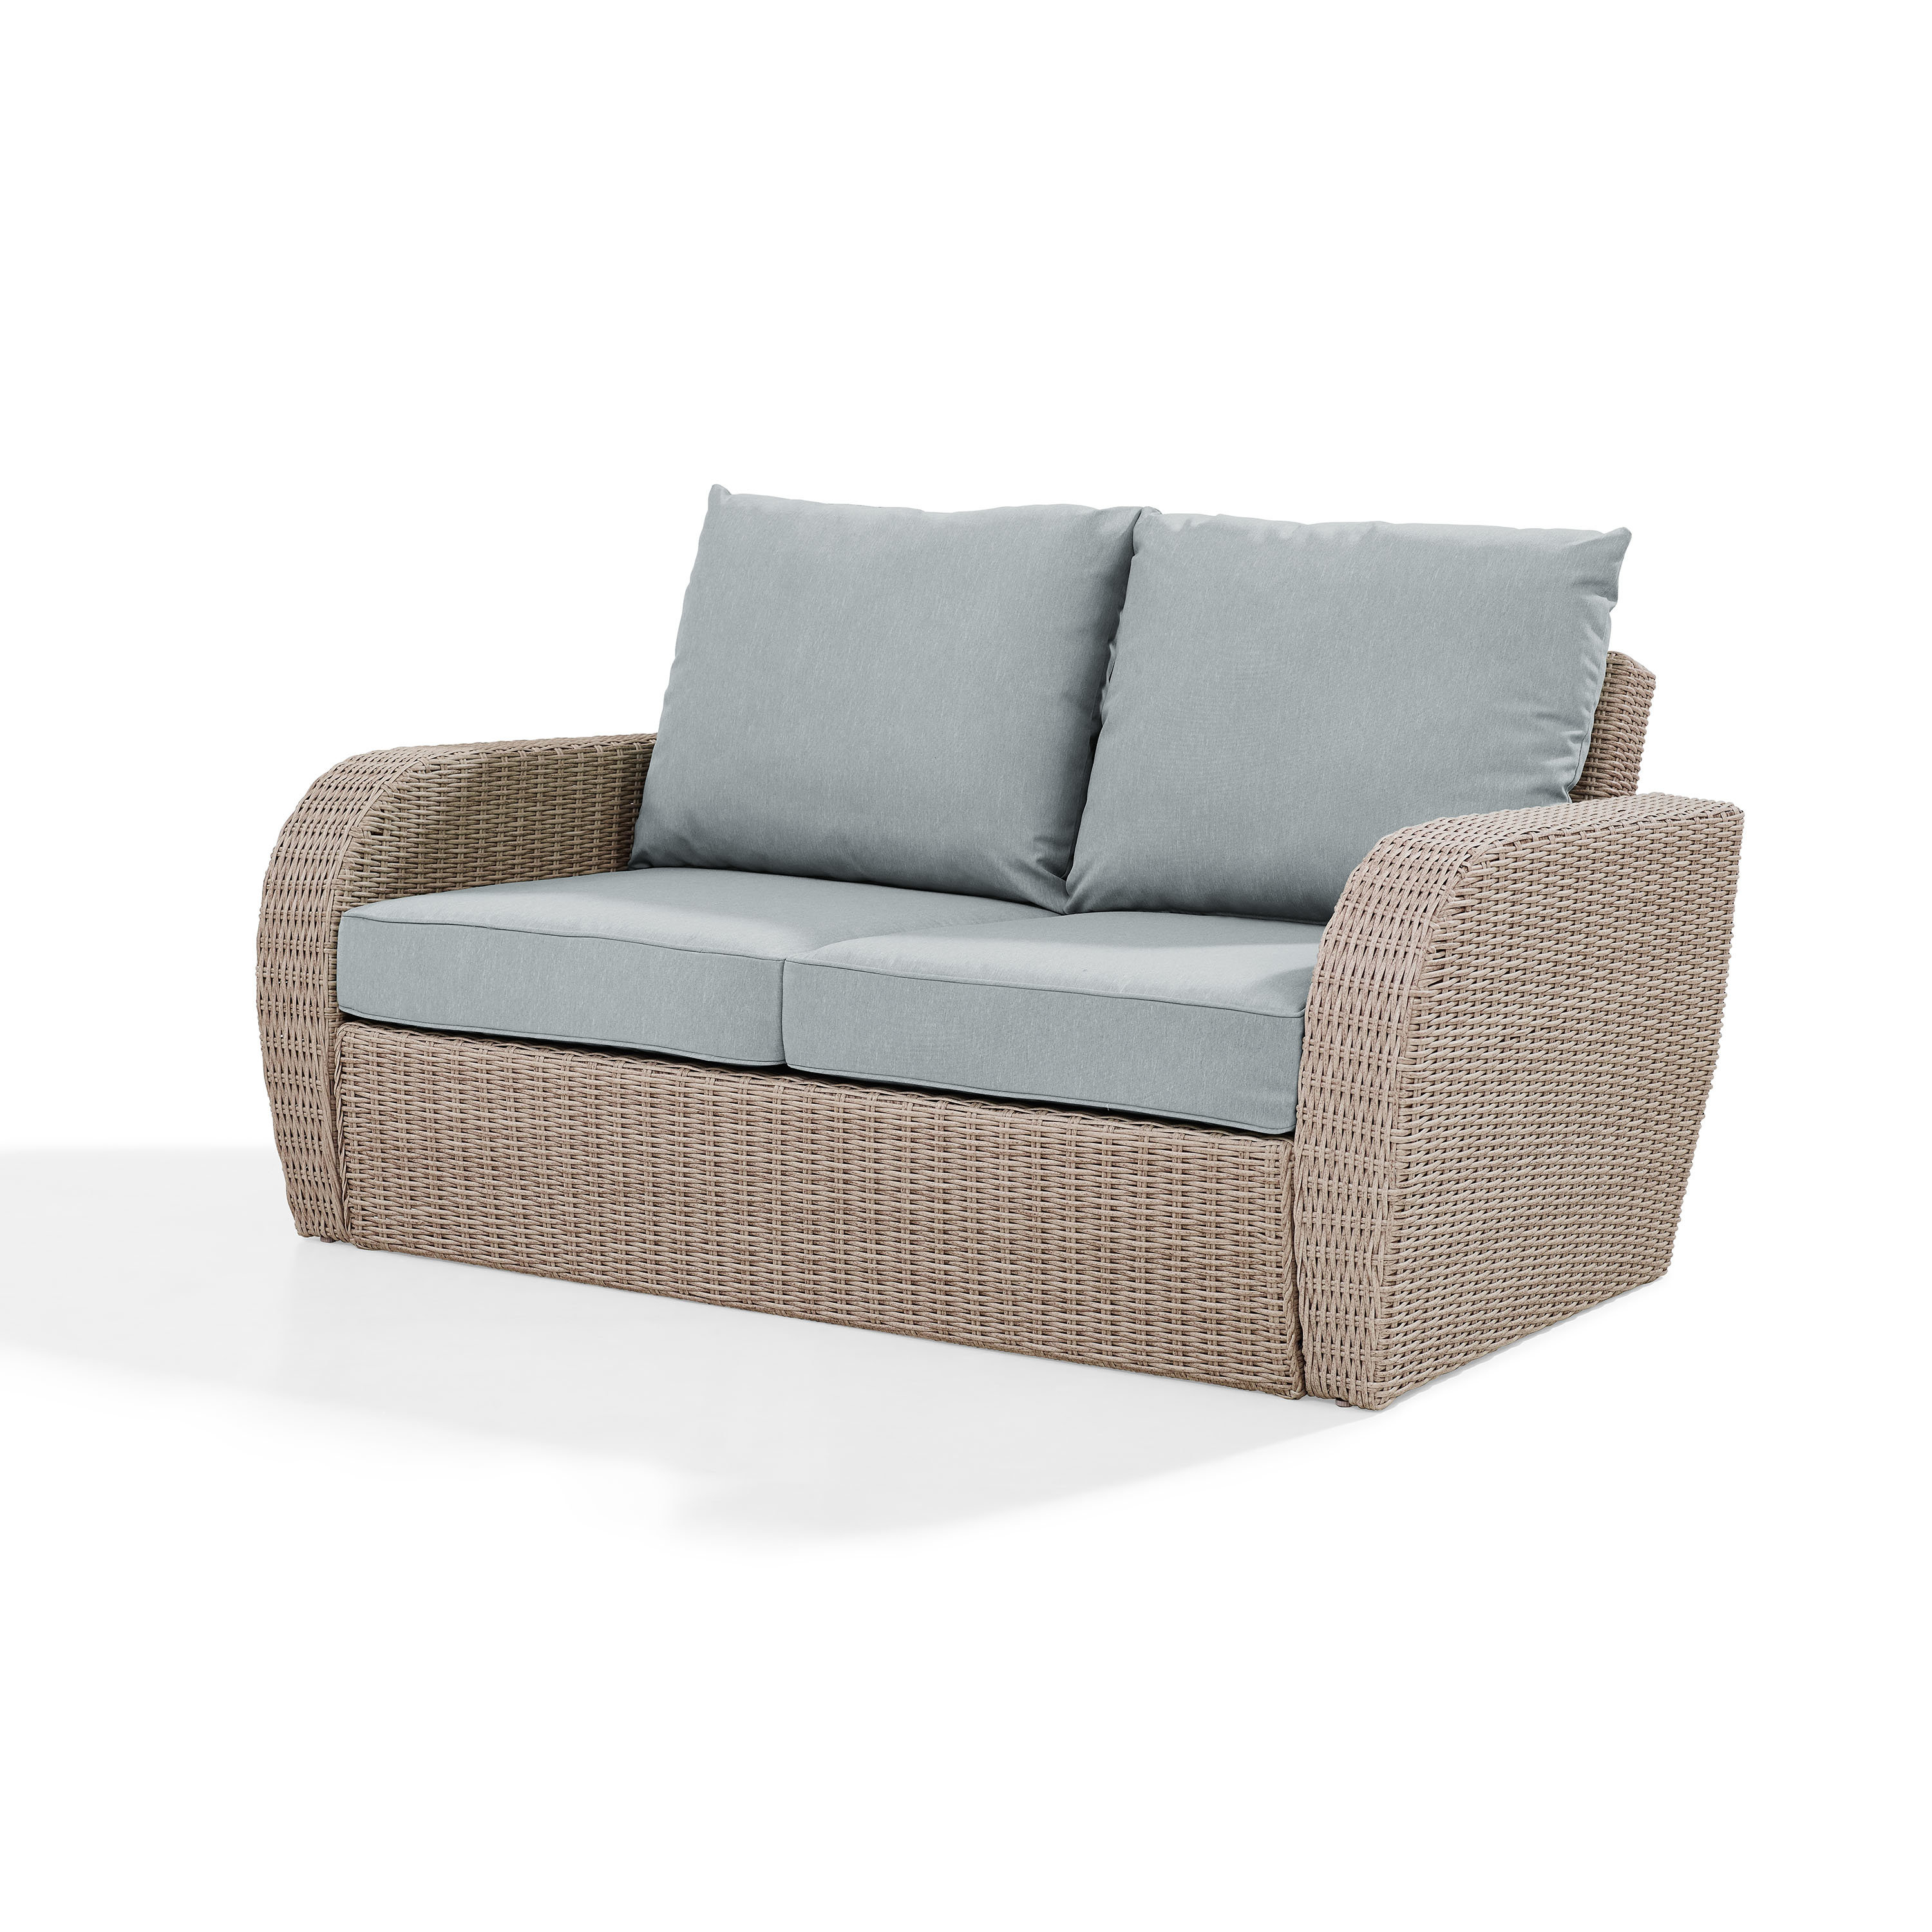 Avadi Outdoor Sofas & Ottomans 3 Piece Set In Recent Zakrzewski Wicker Loveseat With Cushion (Gallery 7 of 25)